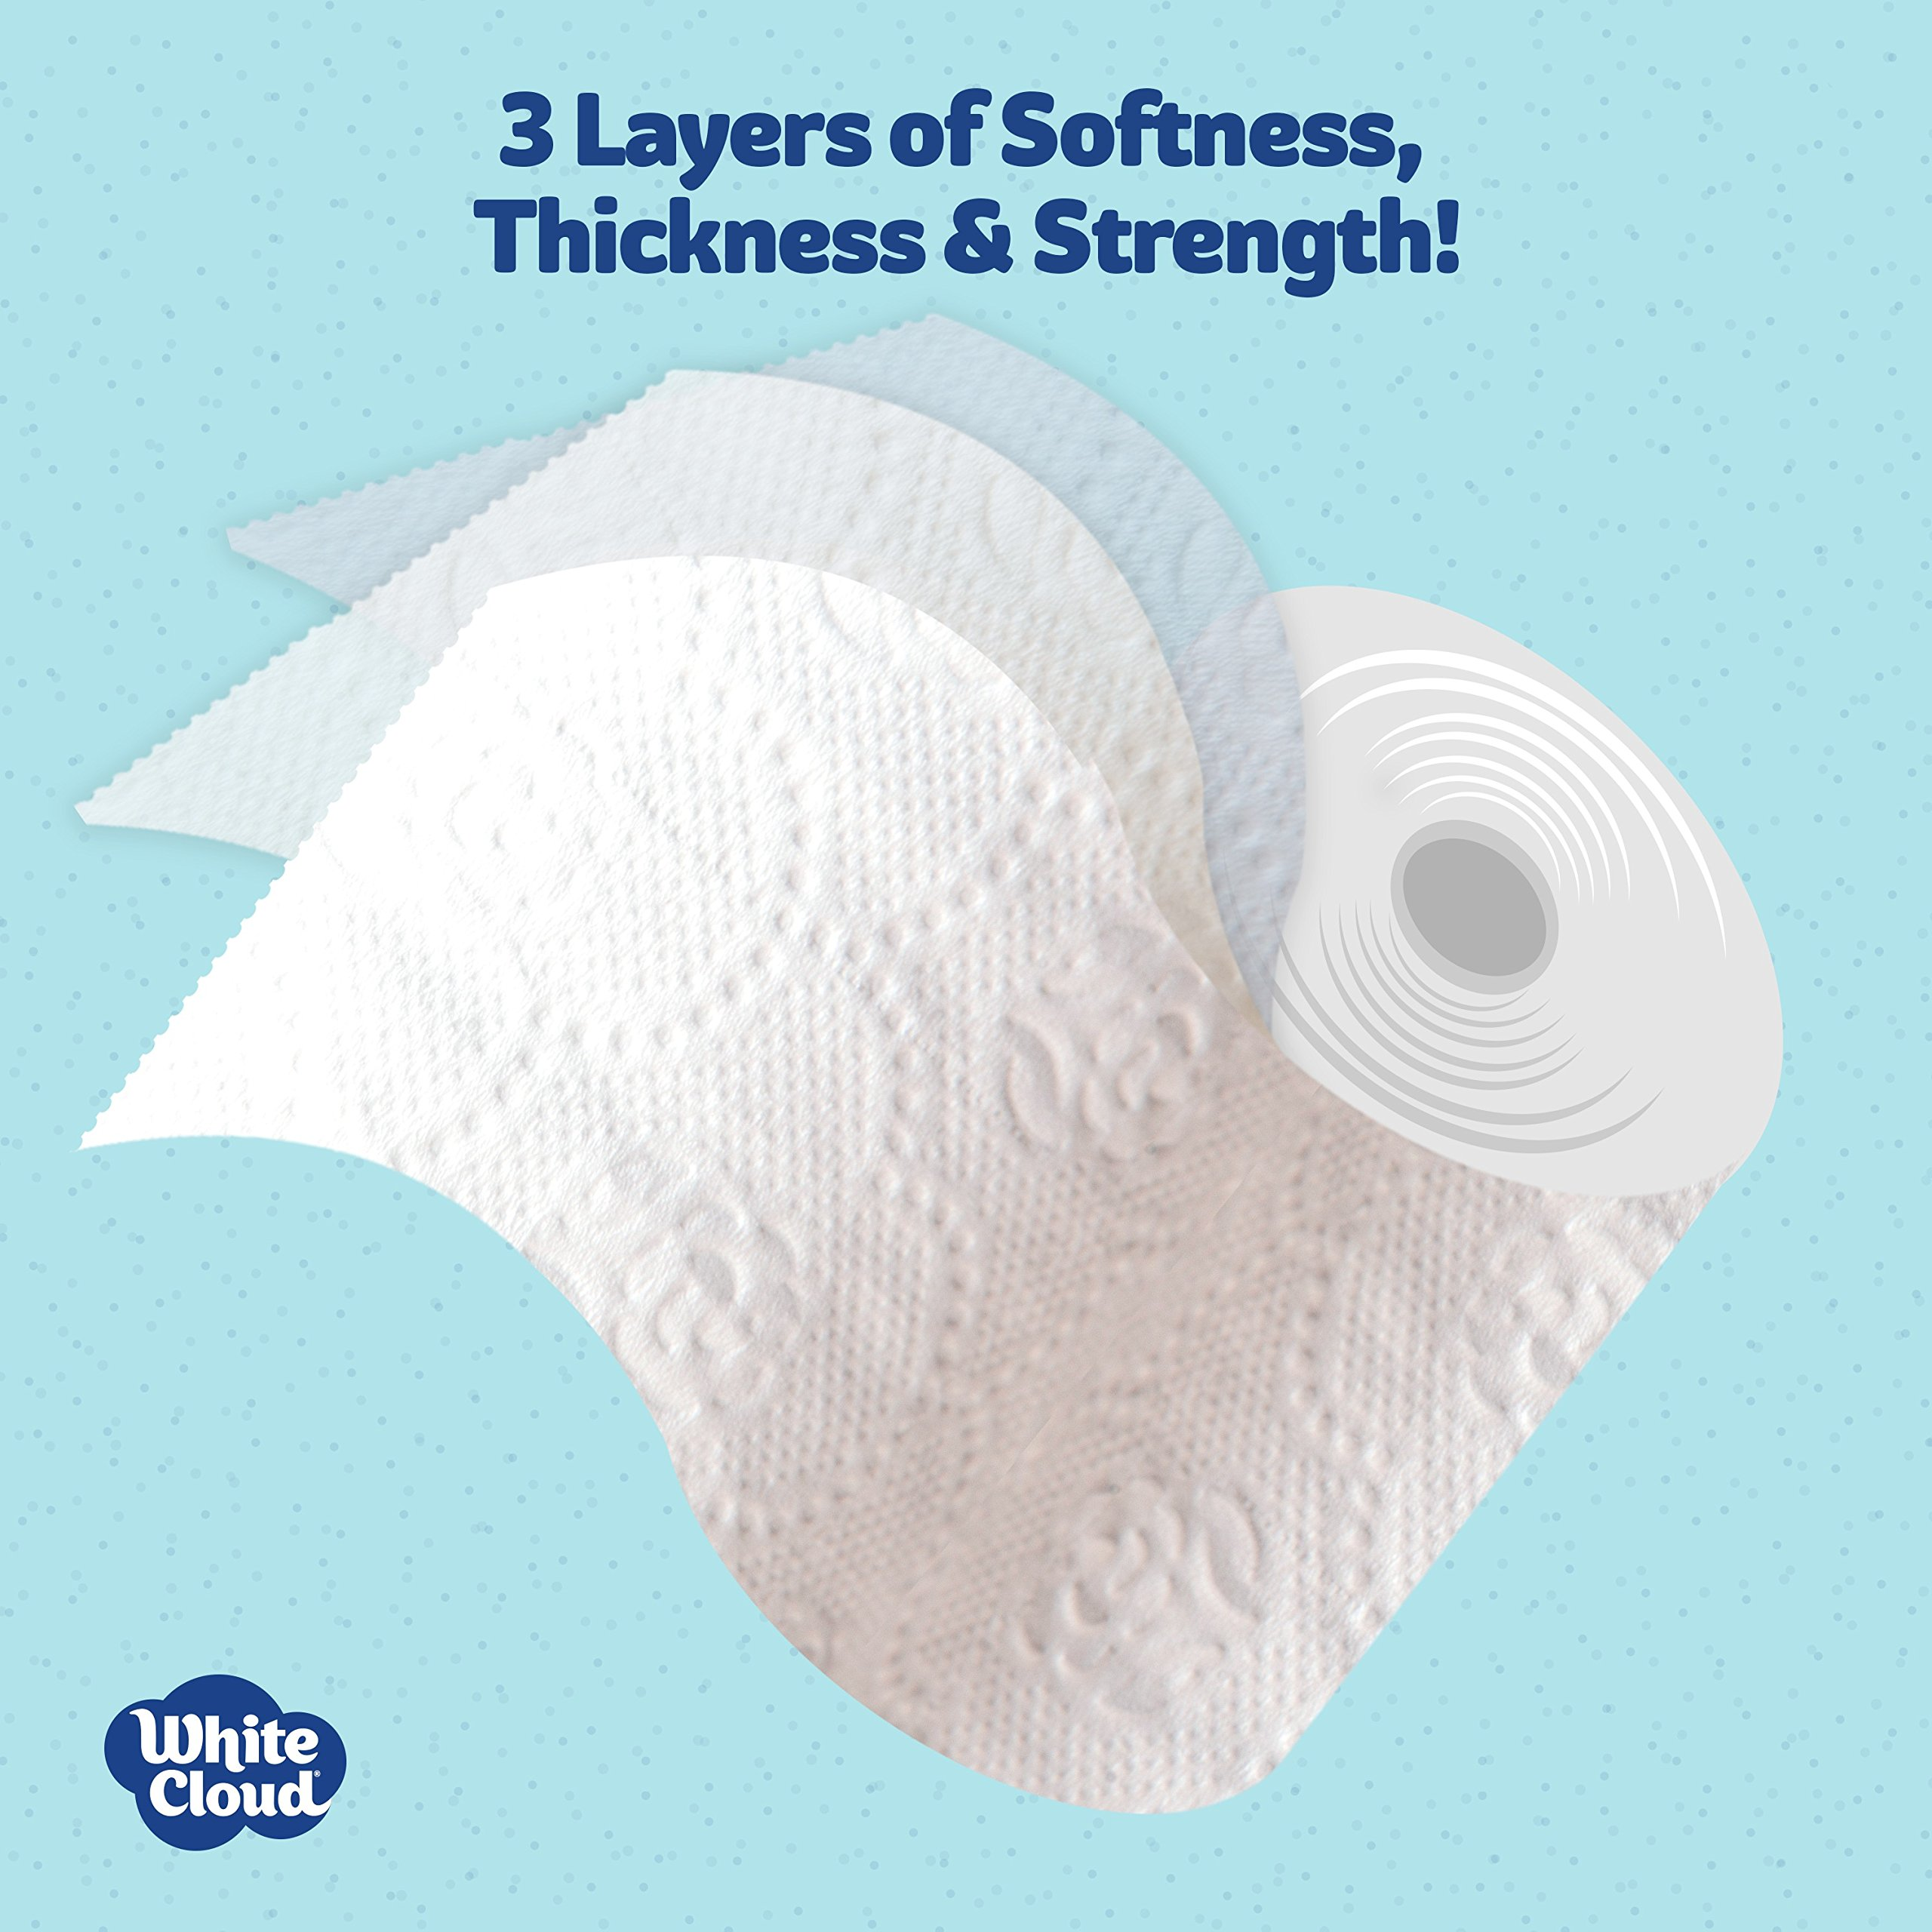 White Cloud Strong & Soft 2 Ply Toilet Paper, 48 Mega Rolls (Pack of 4 with 12 Rolls Each), 308 Sheets Per Roll by WHITE CLOUD